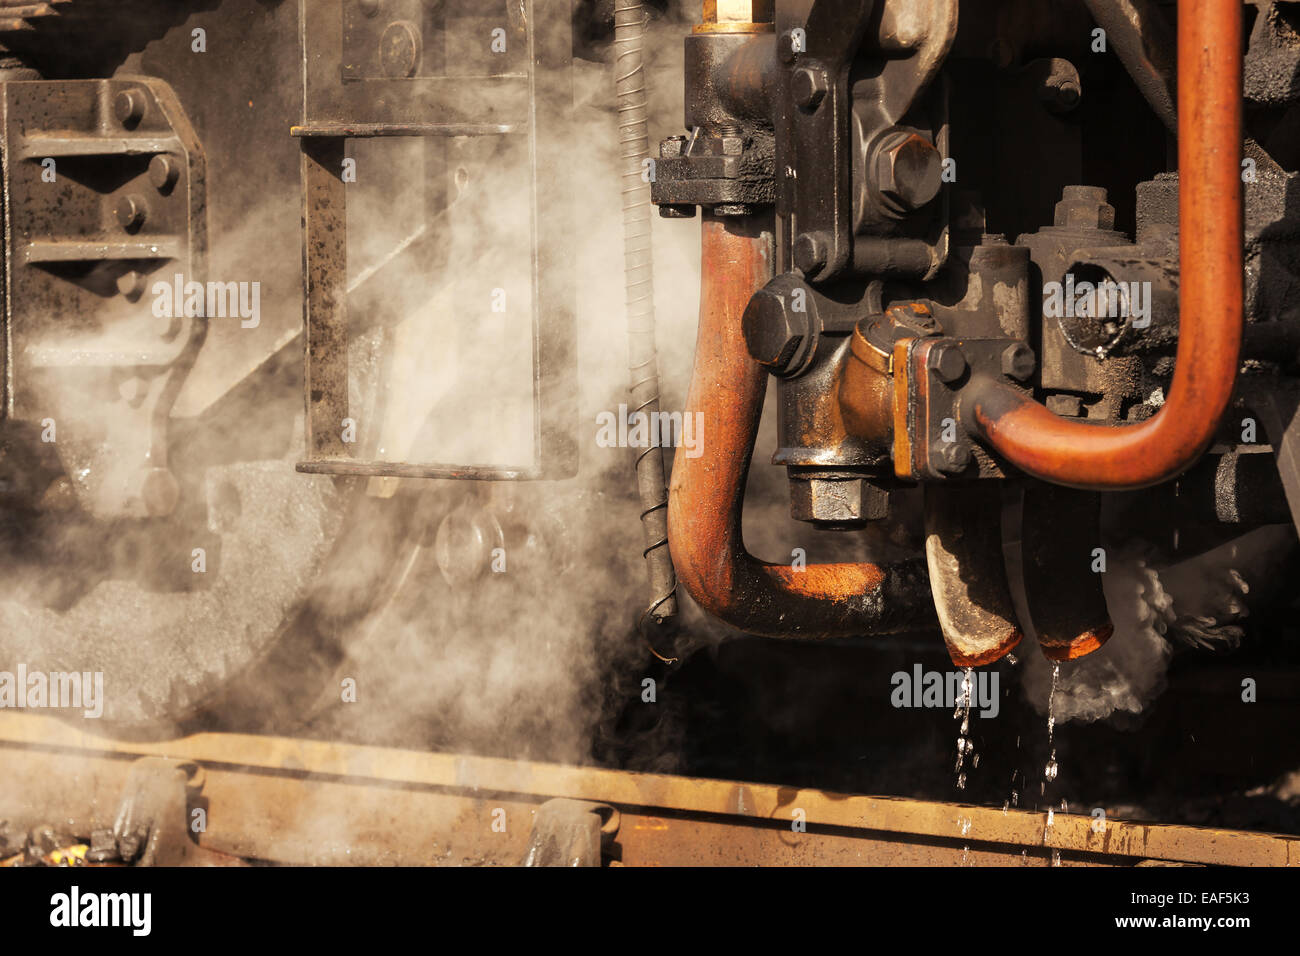 Undercarriage of a steam engine train - Stock Image